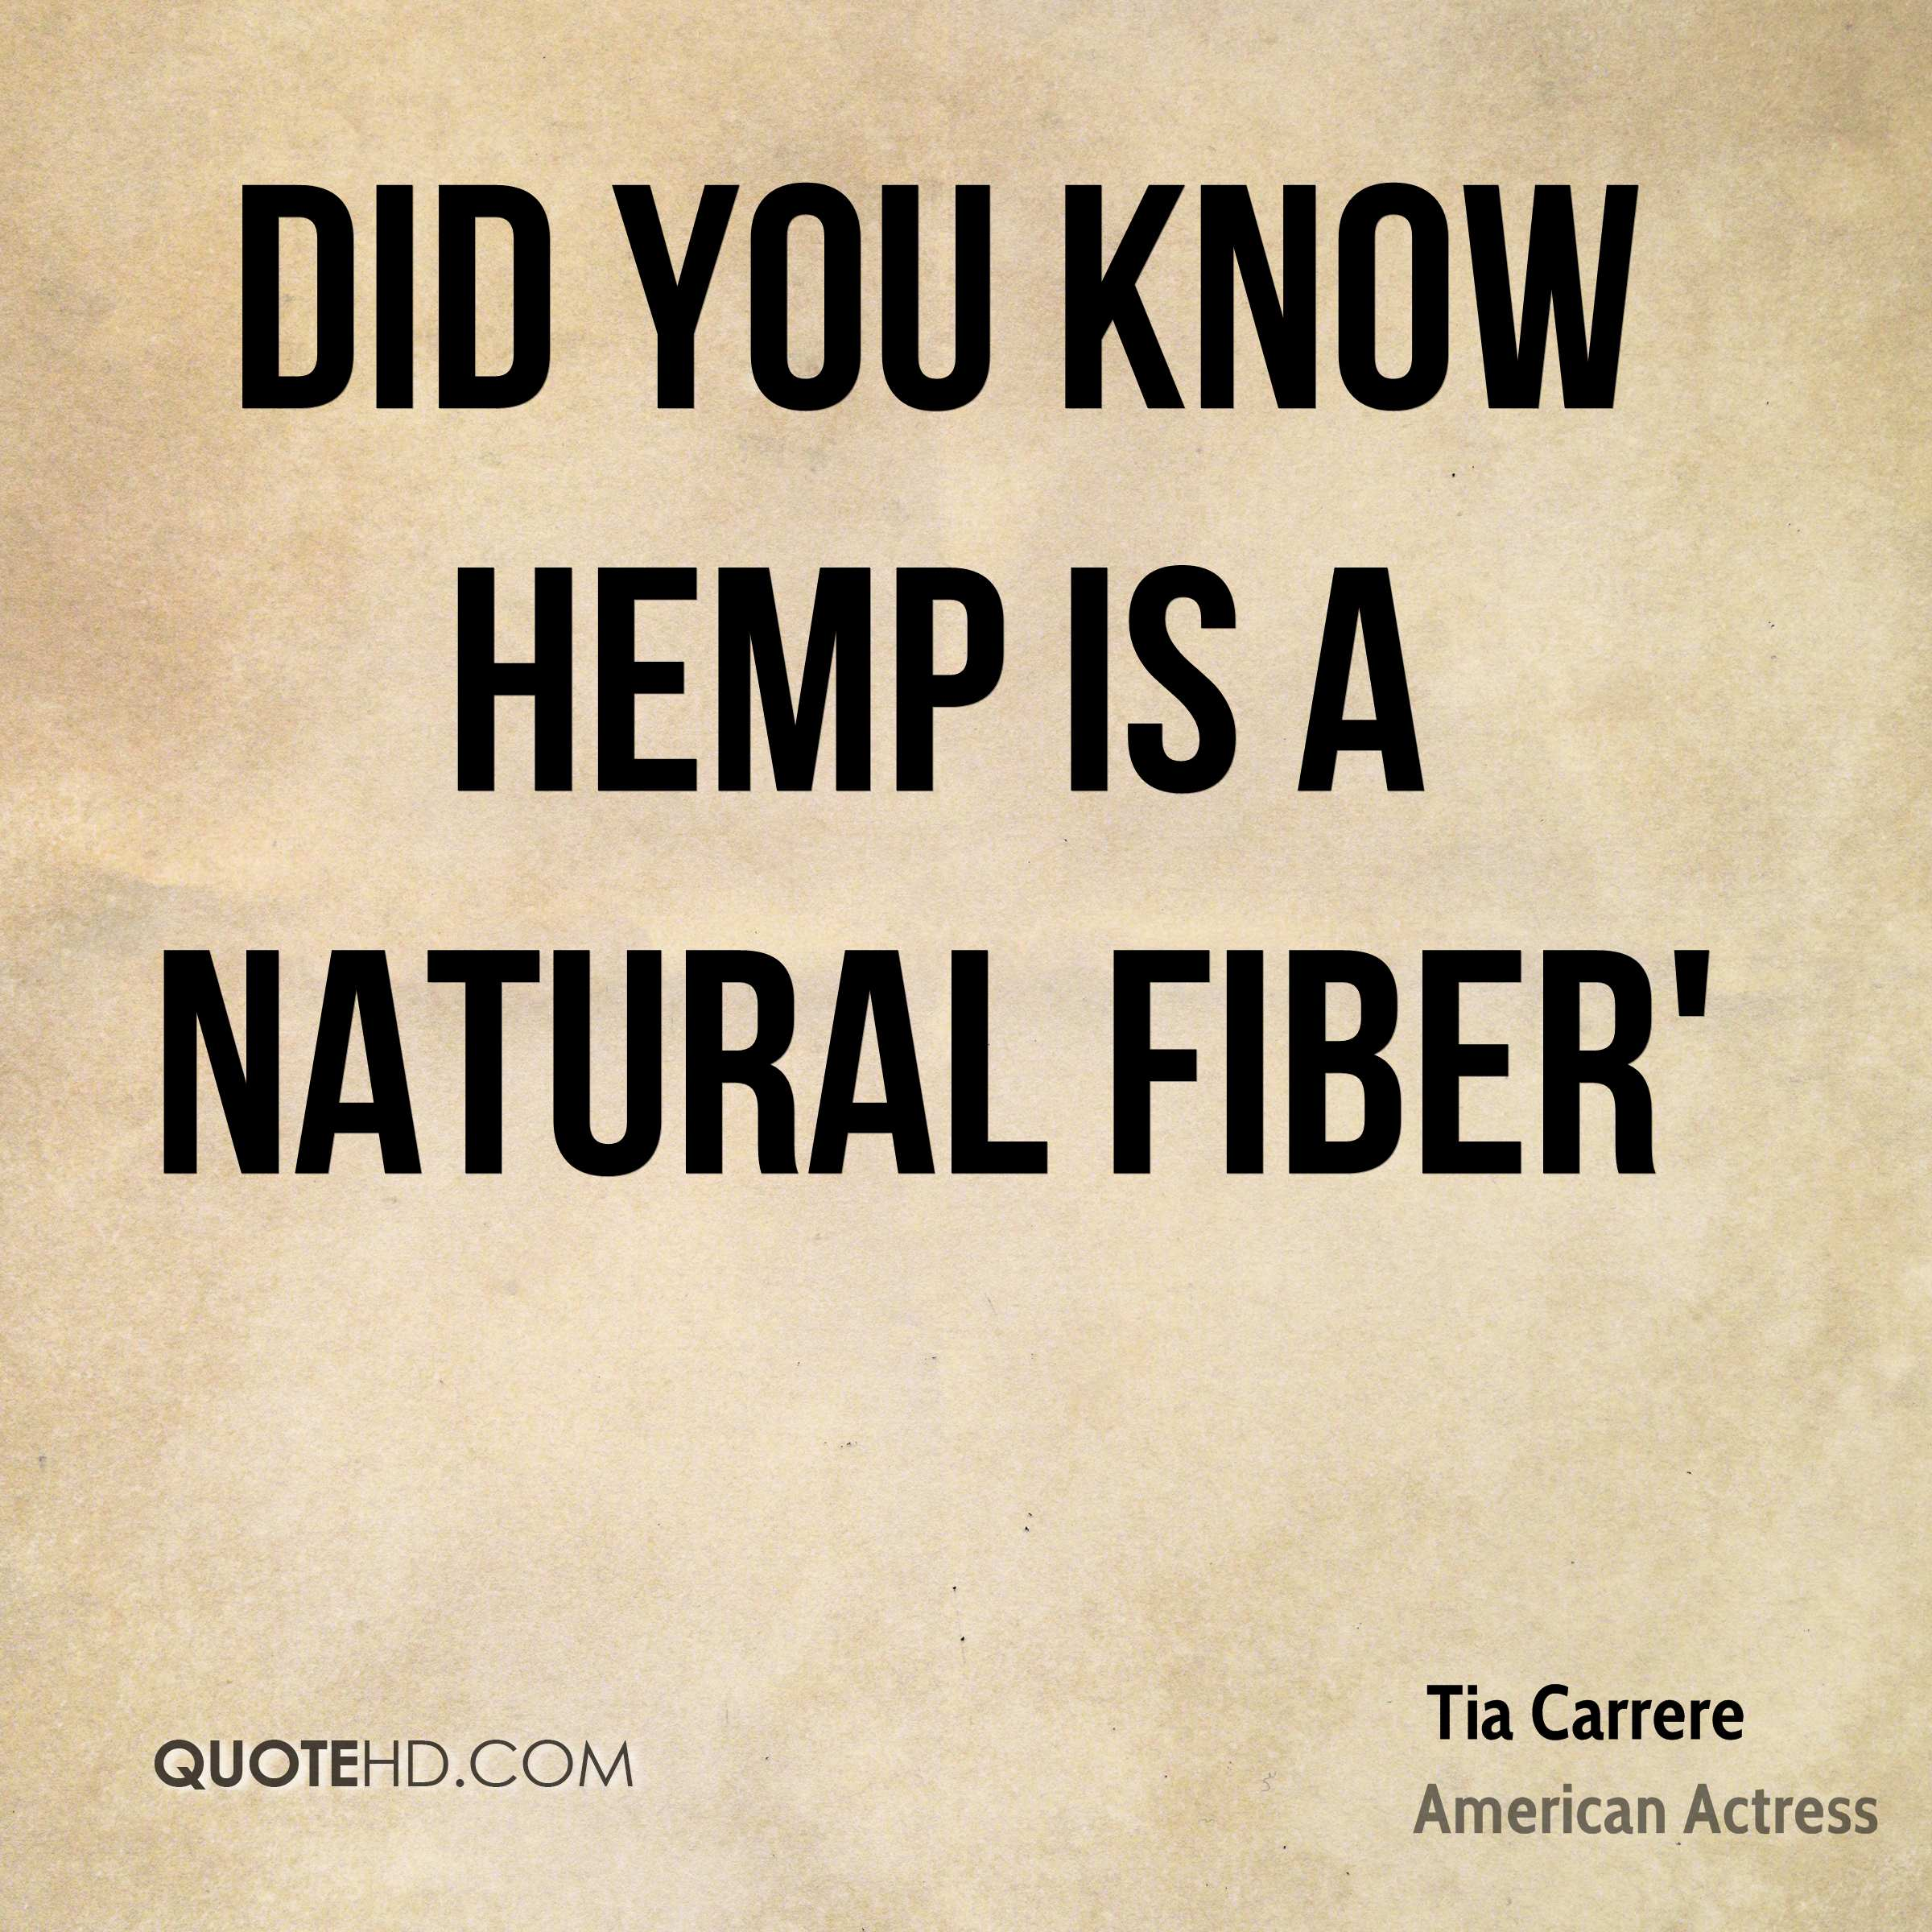 Did you know hemp is a natural fiber'